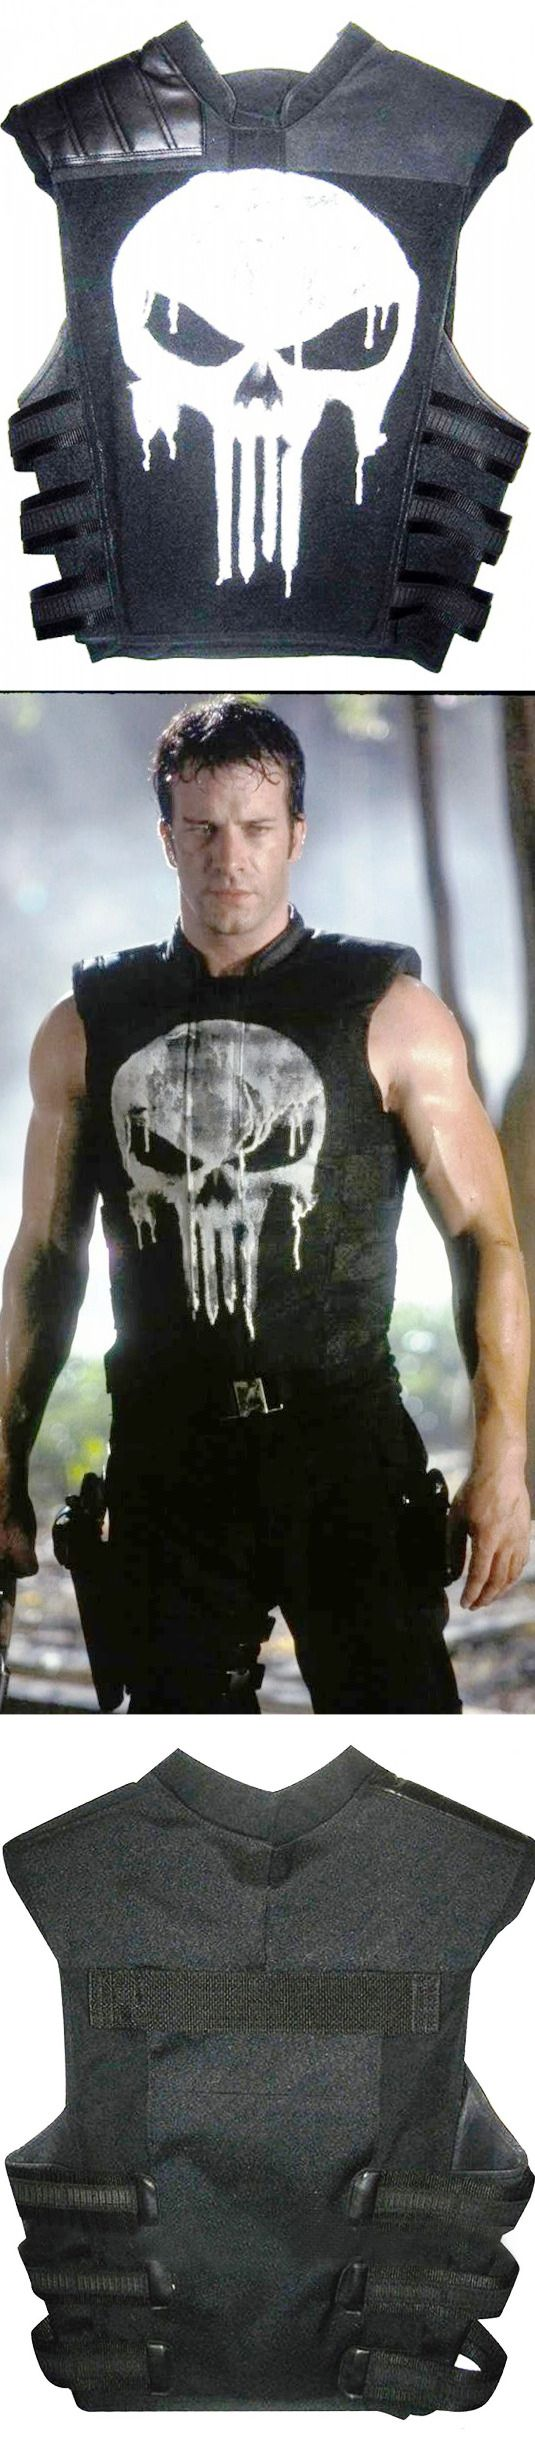 If you want a costume for an attire gathering or fundamentally just what you want for unplanned occasions, there's no need to aspect more, as we have Thomas Jane Punisher Tactical Black Vest. This Vest is certainly stimulated from the film The Punisher. The Thomas Jane Punisher Black Leather Vest is made up of Synthetic Leather with an inward lining of viscose.  #thomasjane #punisher #fashion #movies #lovers #fans #boysfashion #boyscollection #menfashion #shopping #hot #sexy #stylish…